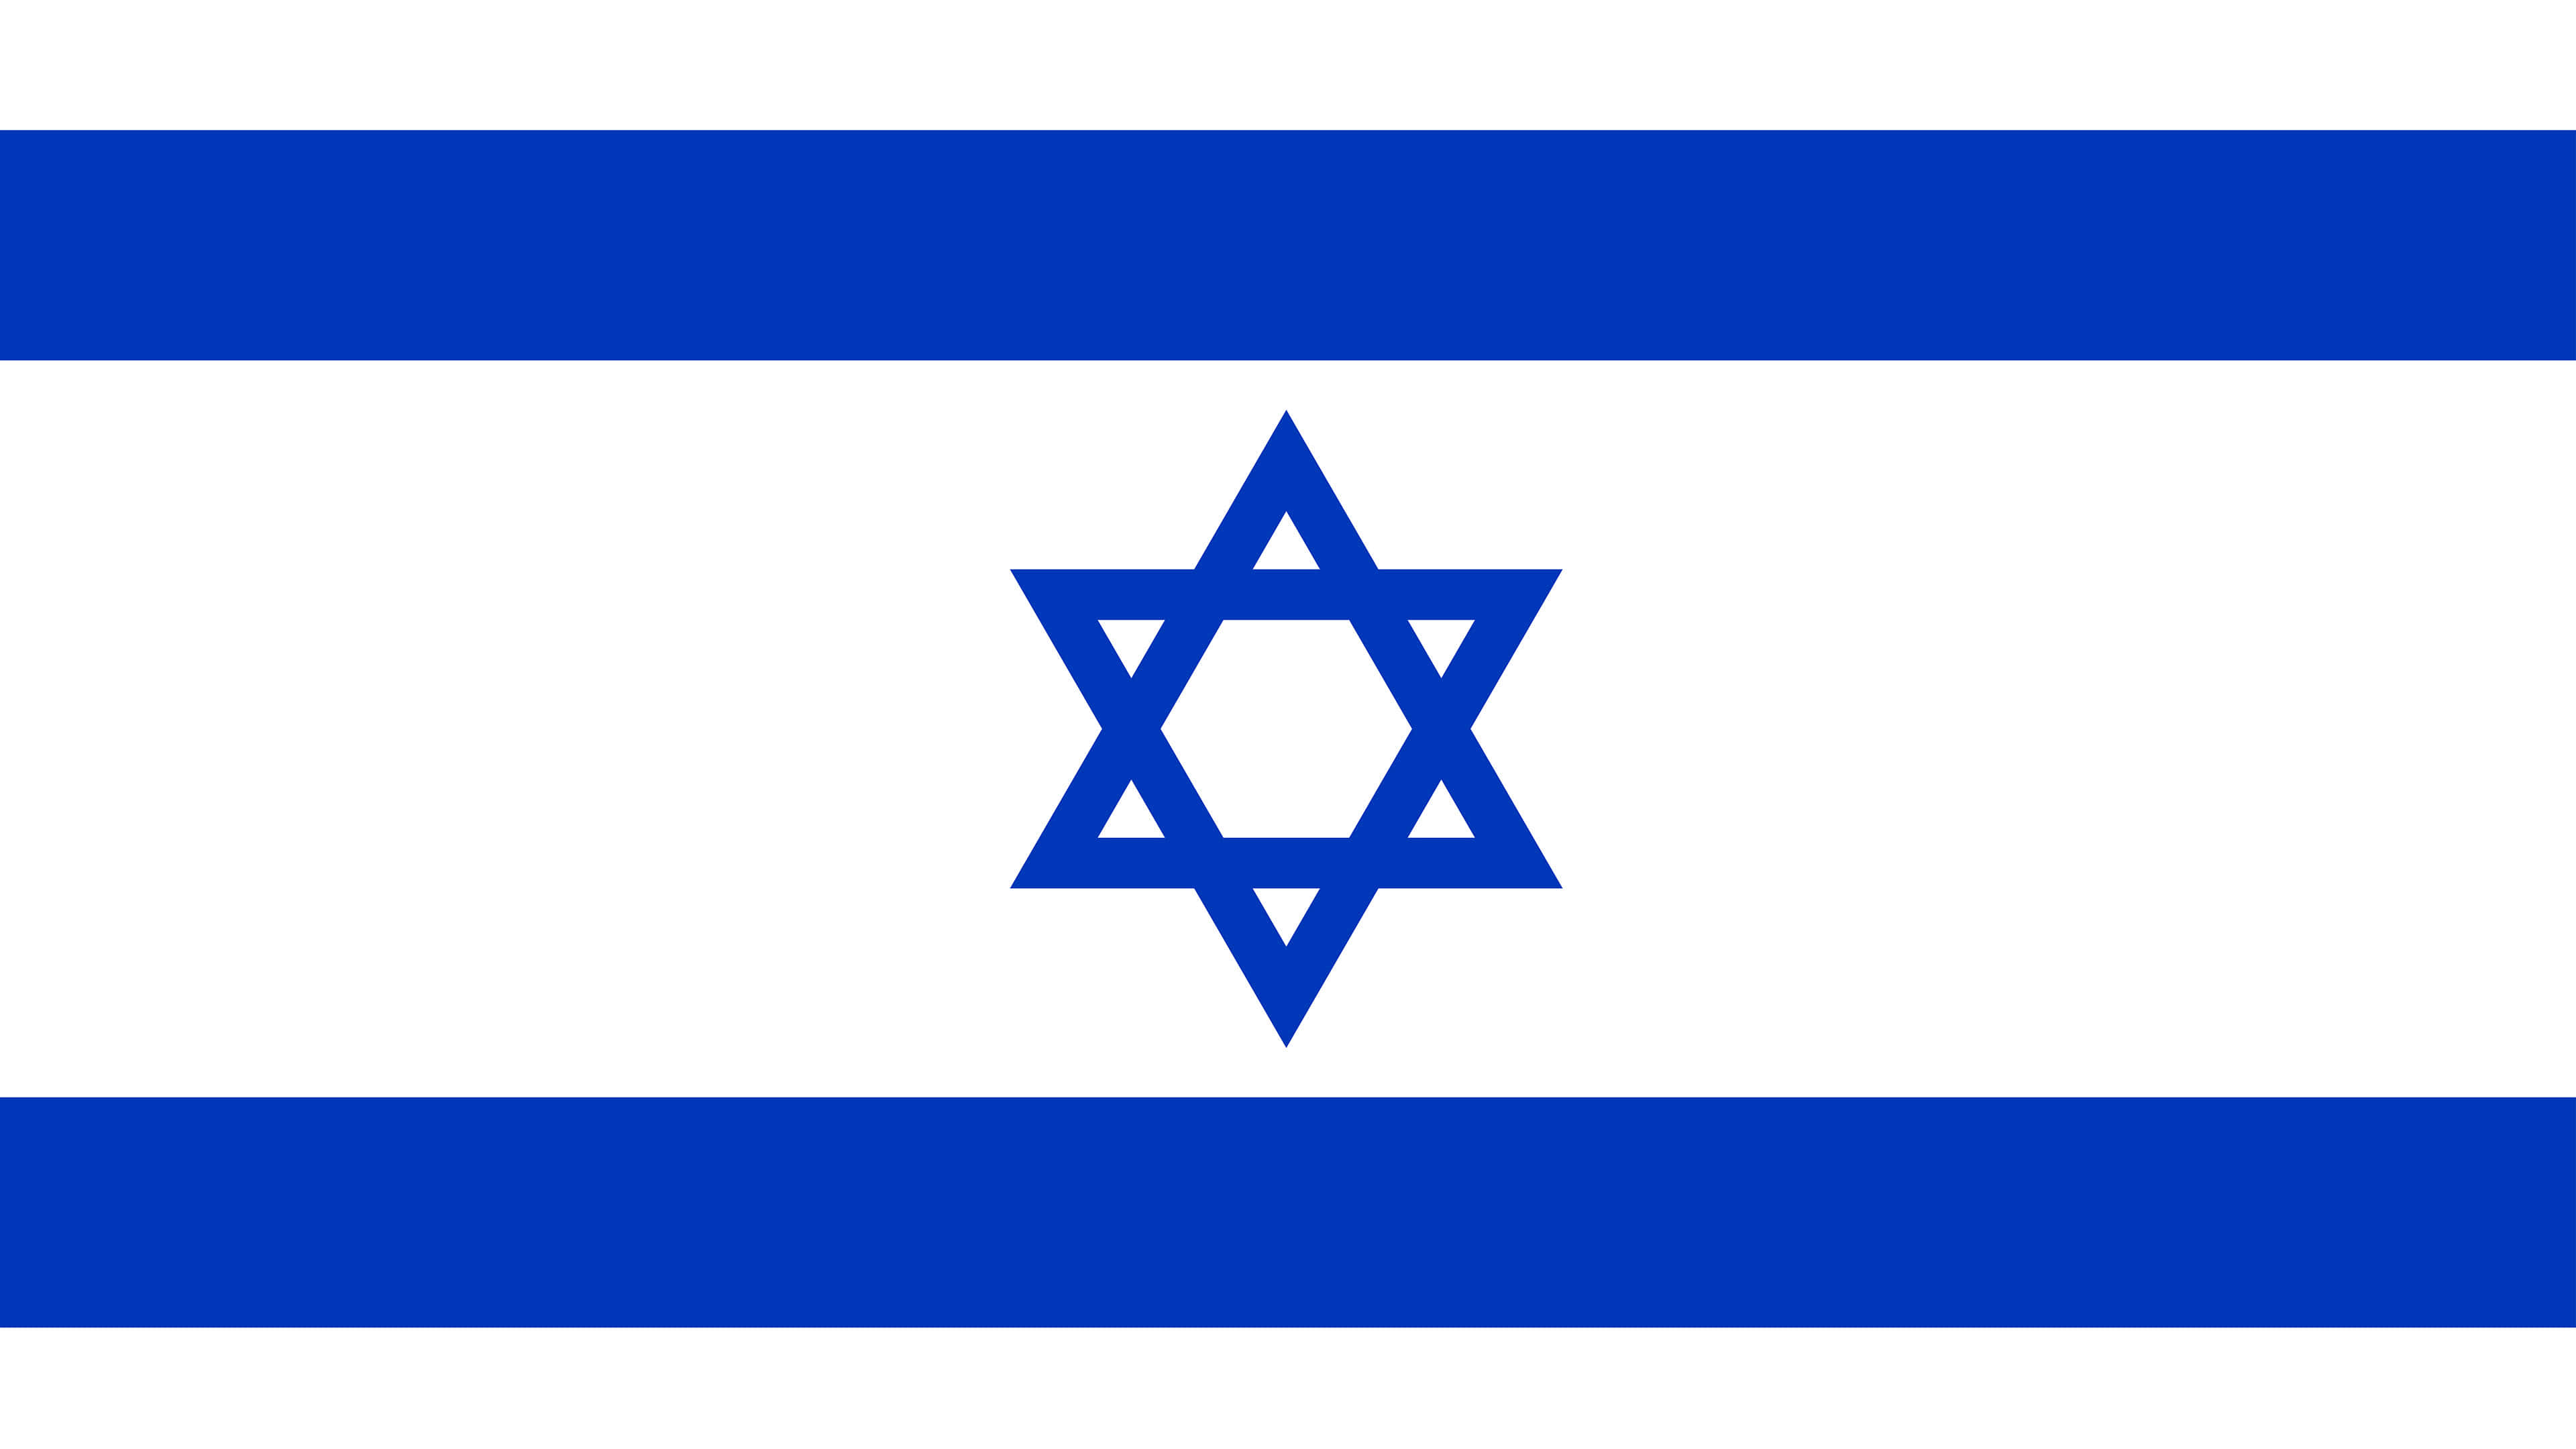 israel flag uhd 4k wallpaper